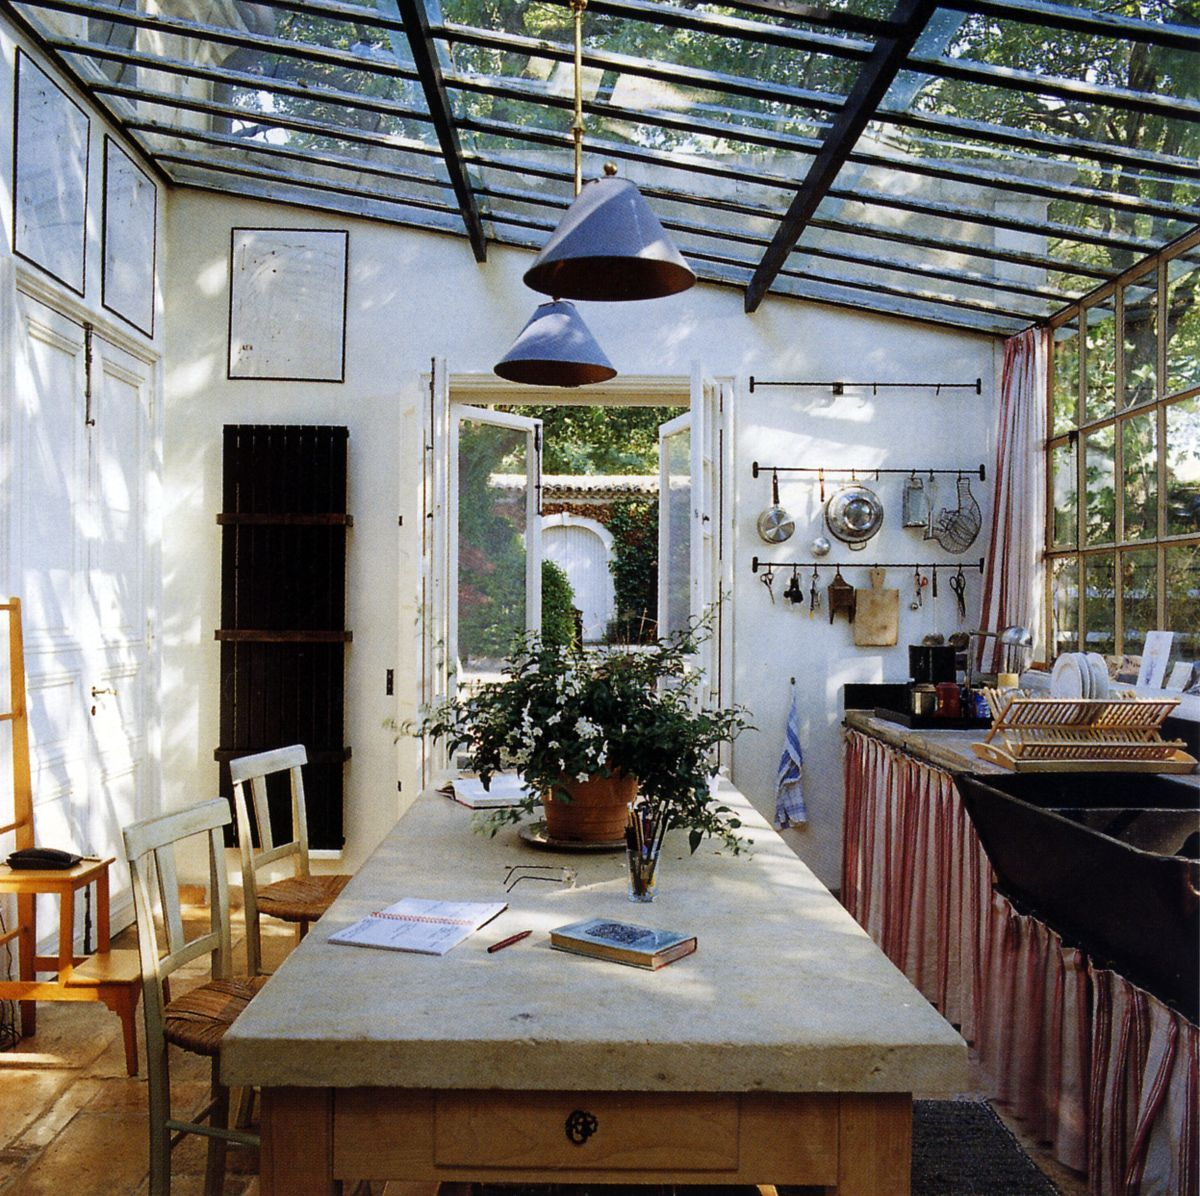 Veranda kitchen dining room